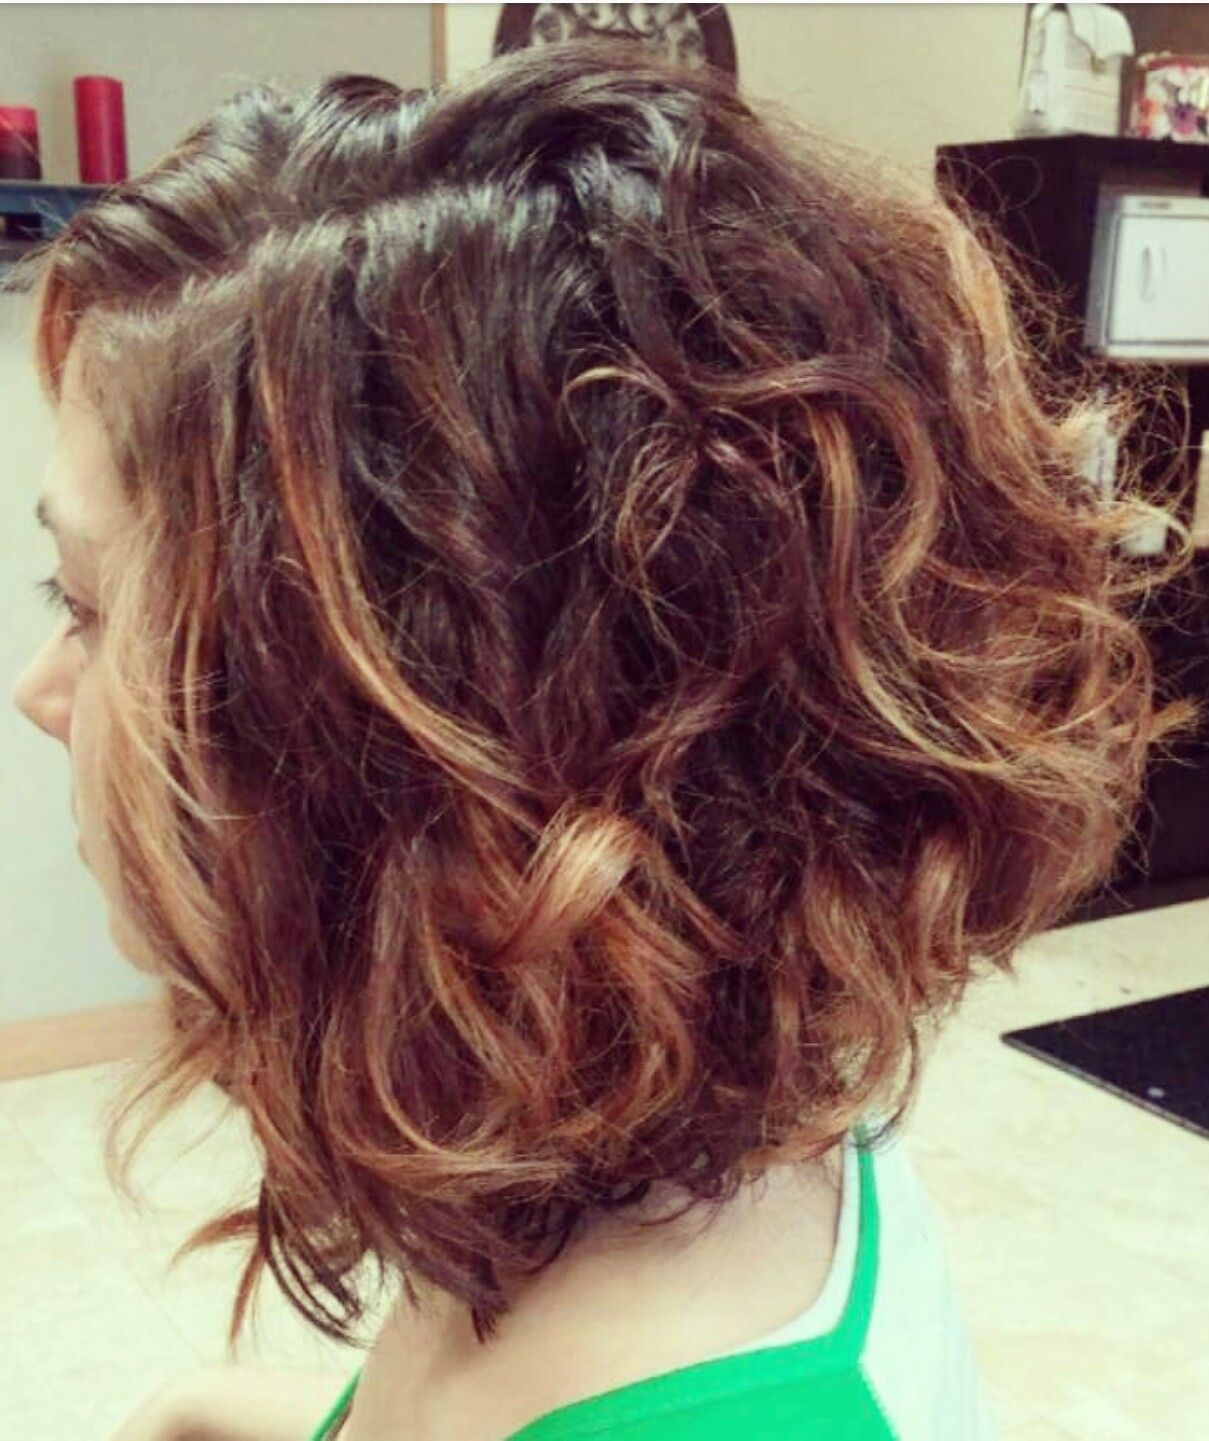 Curly Angled Bob Past Hair Curly Angled Bobs Wavy Bob Hairstyles Angled Bob Hairstyles